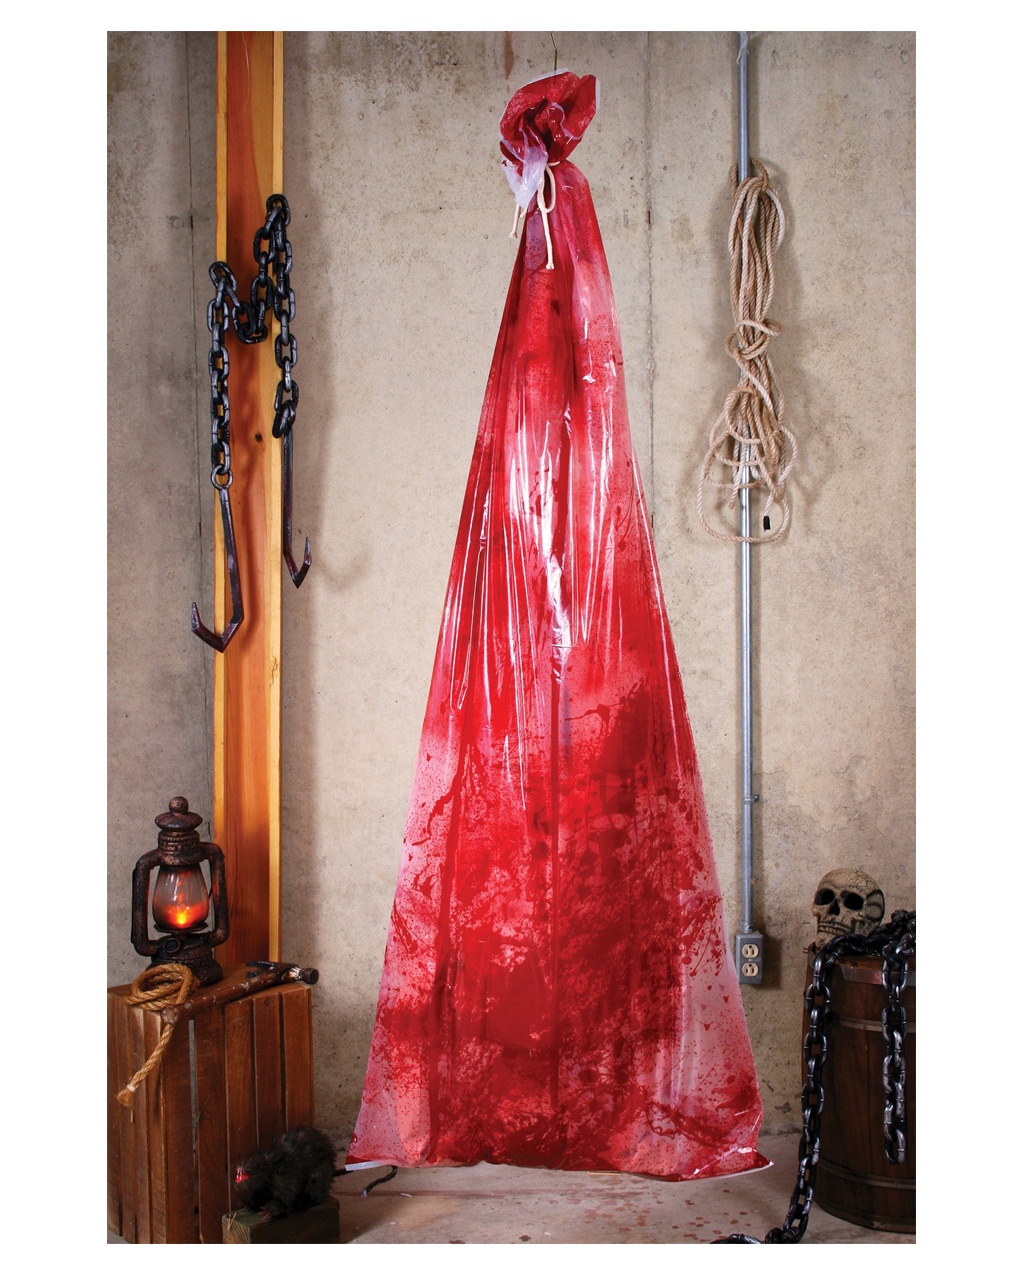 Inflatable body bag halloween decoration horror for Bag decoration ideas